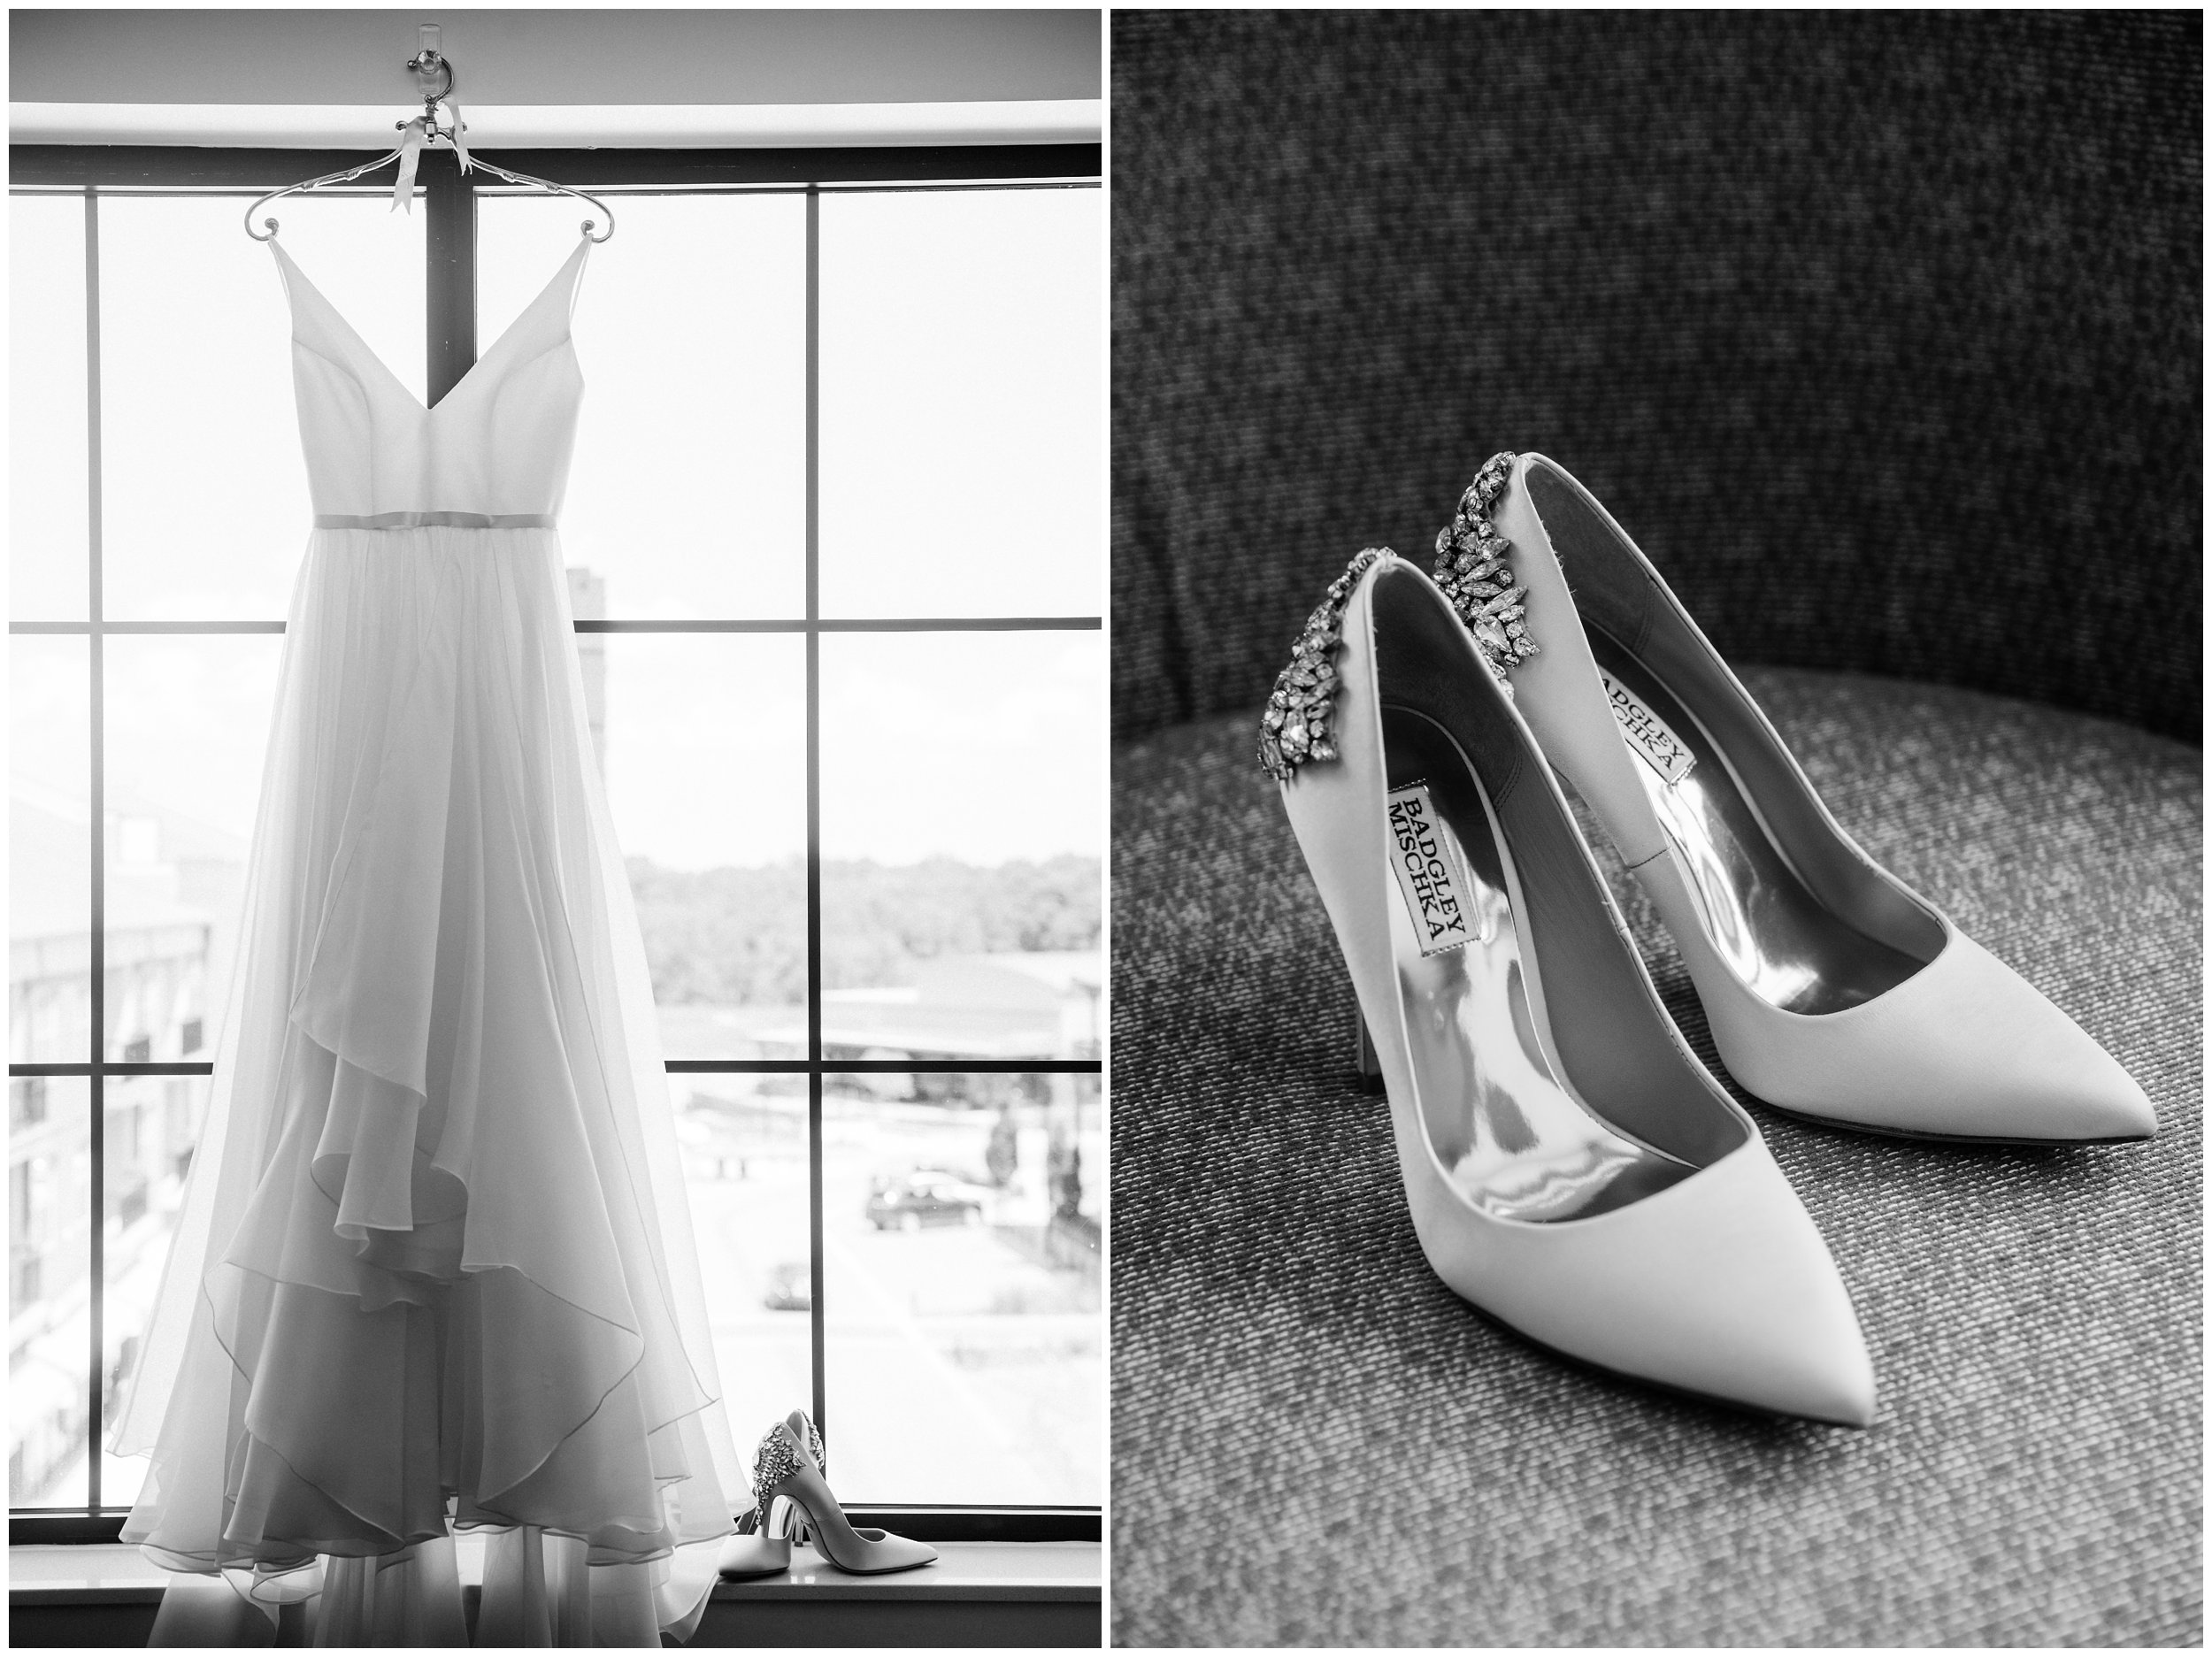 Wedding dress and shoe detail